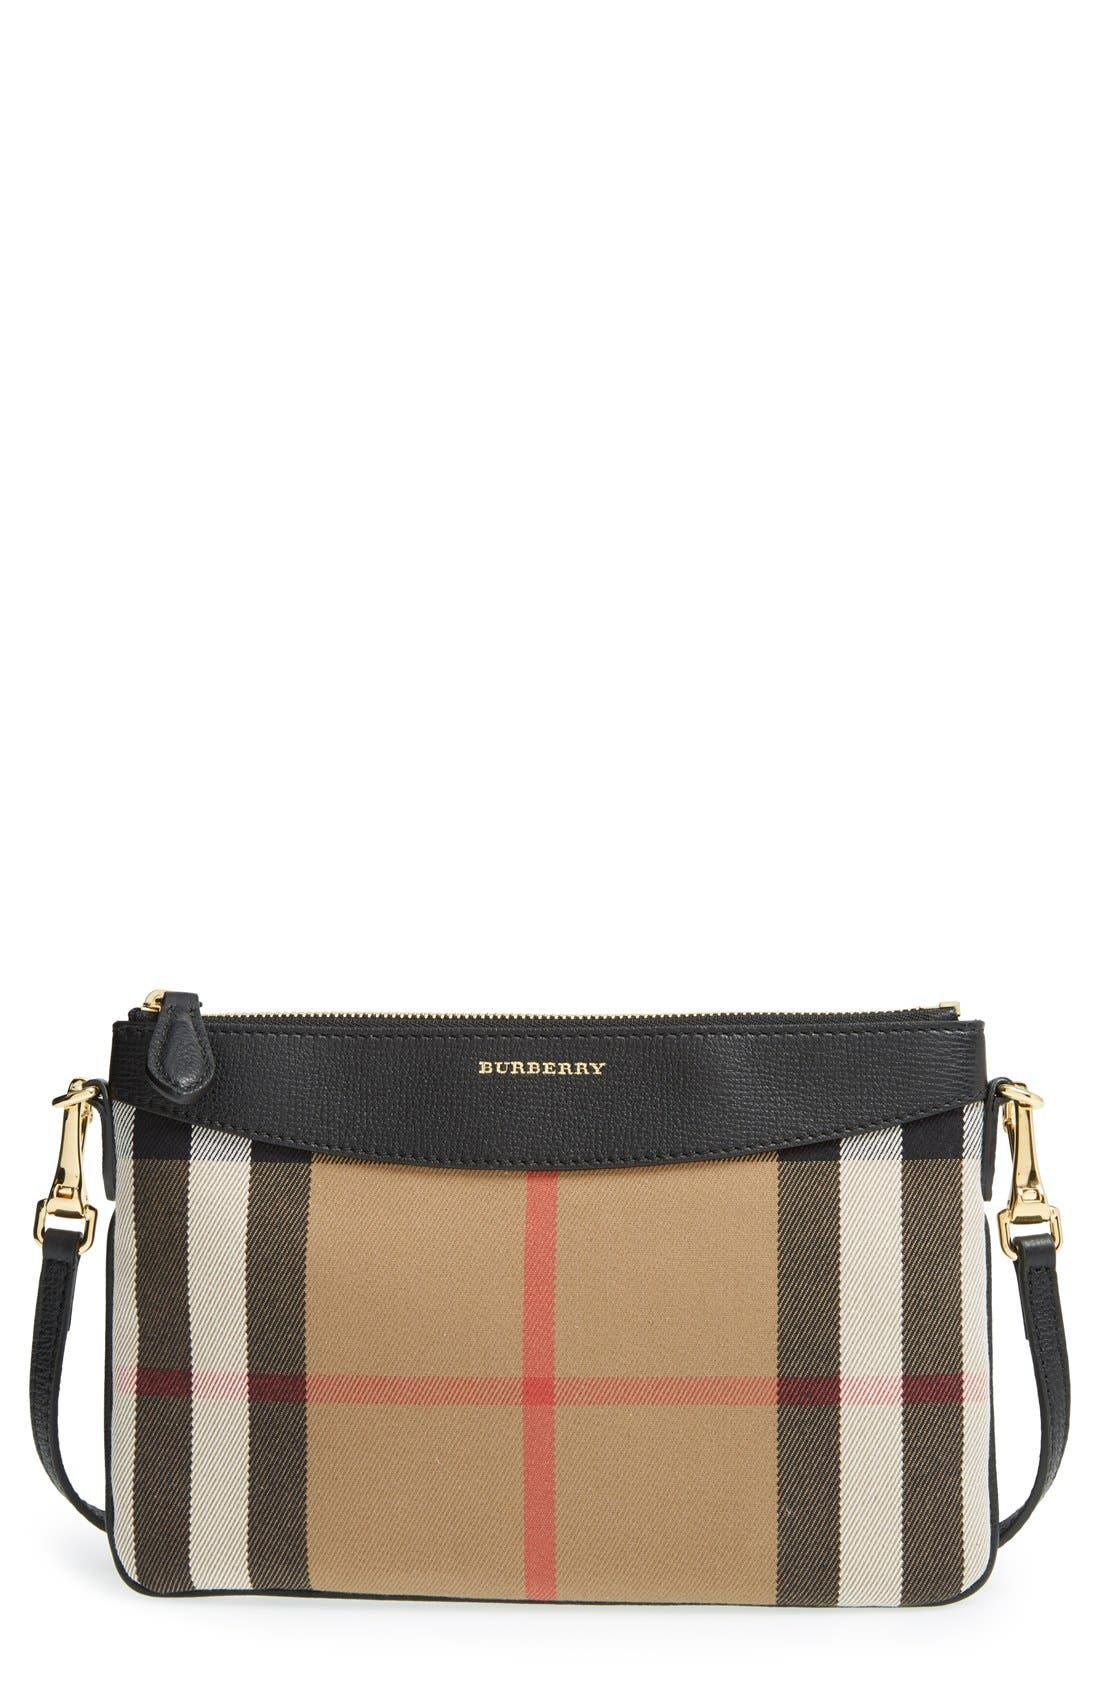 'Peyton - House Check' Crossbody Bag,                             Main thumbnail 1, color,                             Black